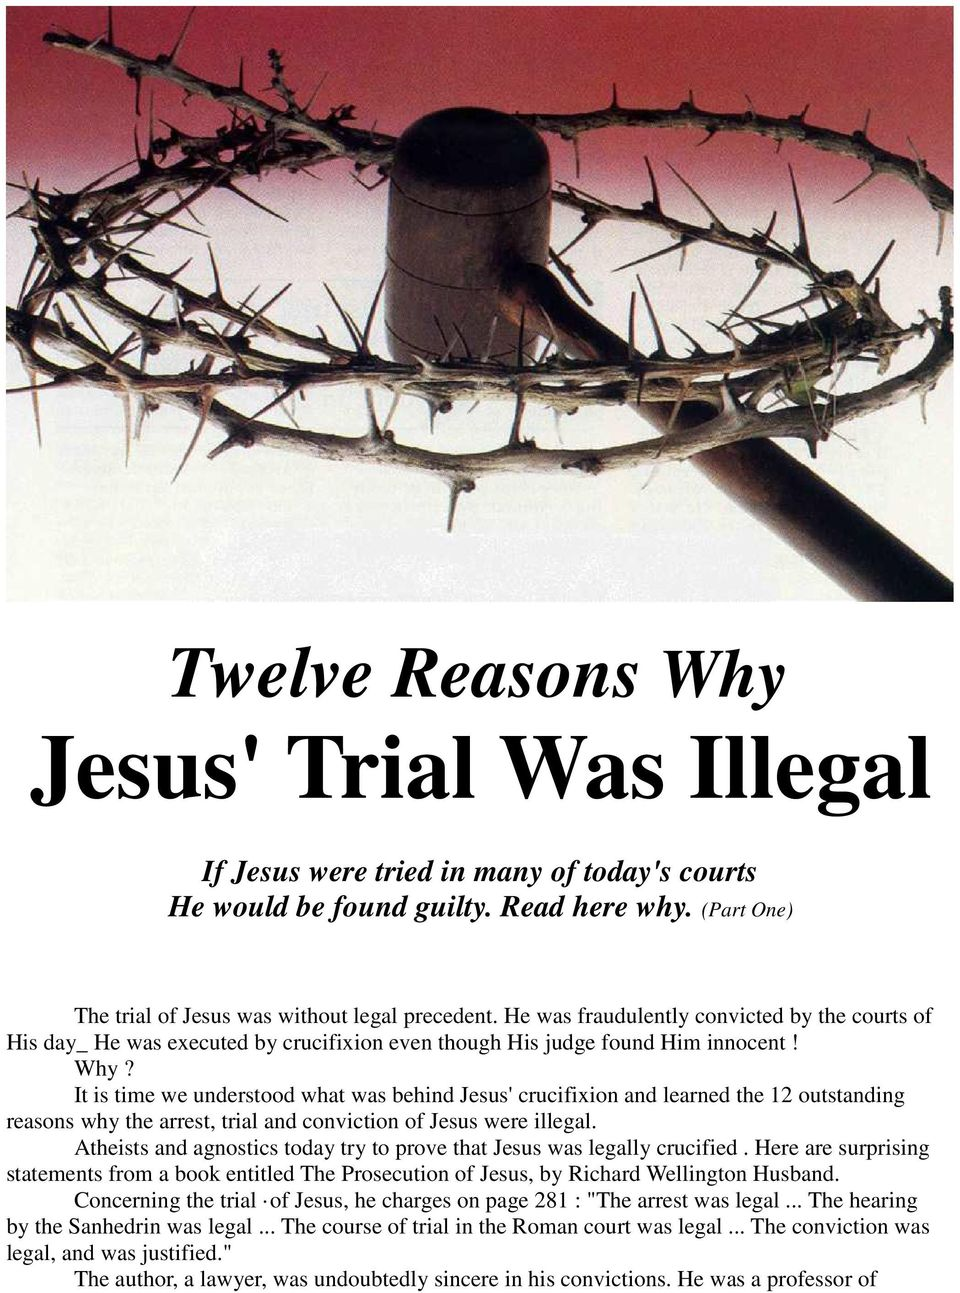 It is time we understood what was behind Jesus' crucifixion and learned the 12 outstanding reasons why the arrest, trial and conviction of Jesus were illegal.